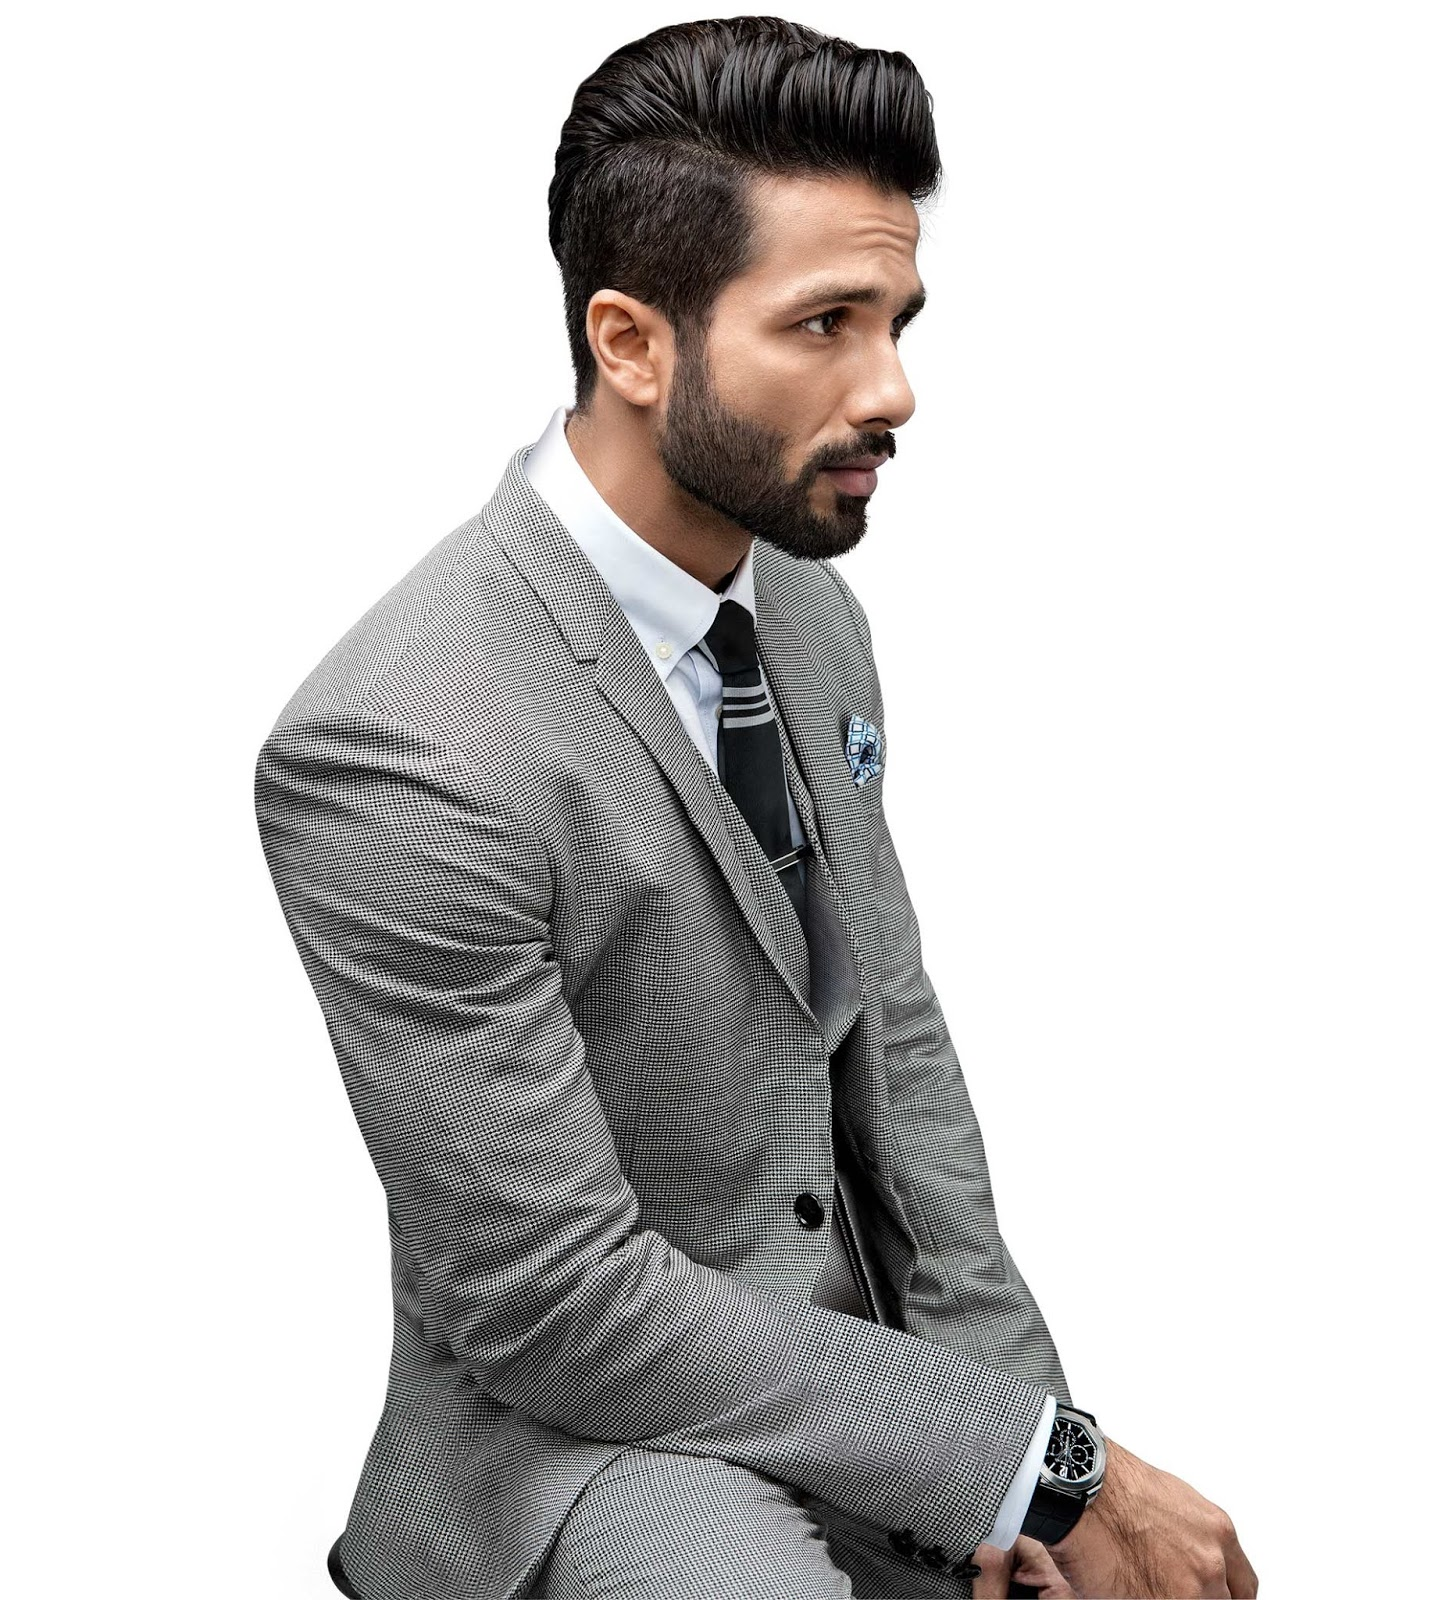 shahid kapoor 14 dashing hd images download - indian celebrities hd